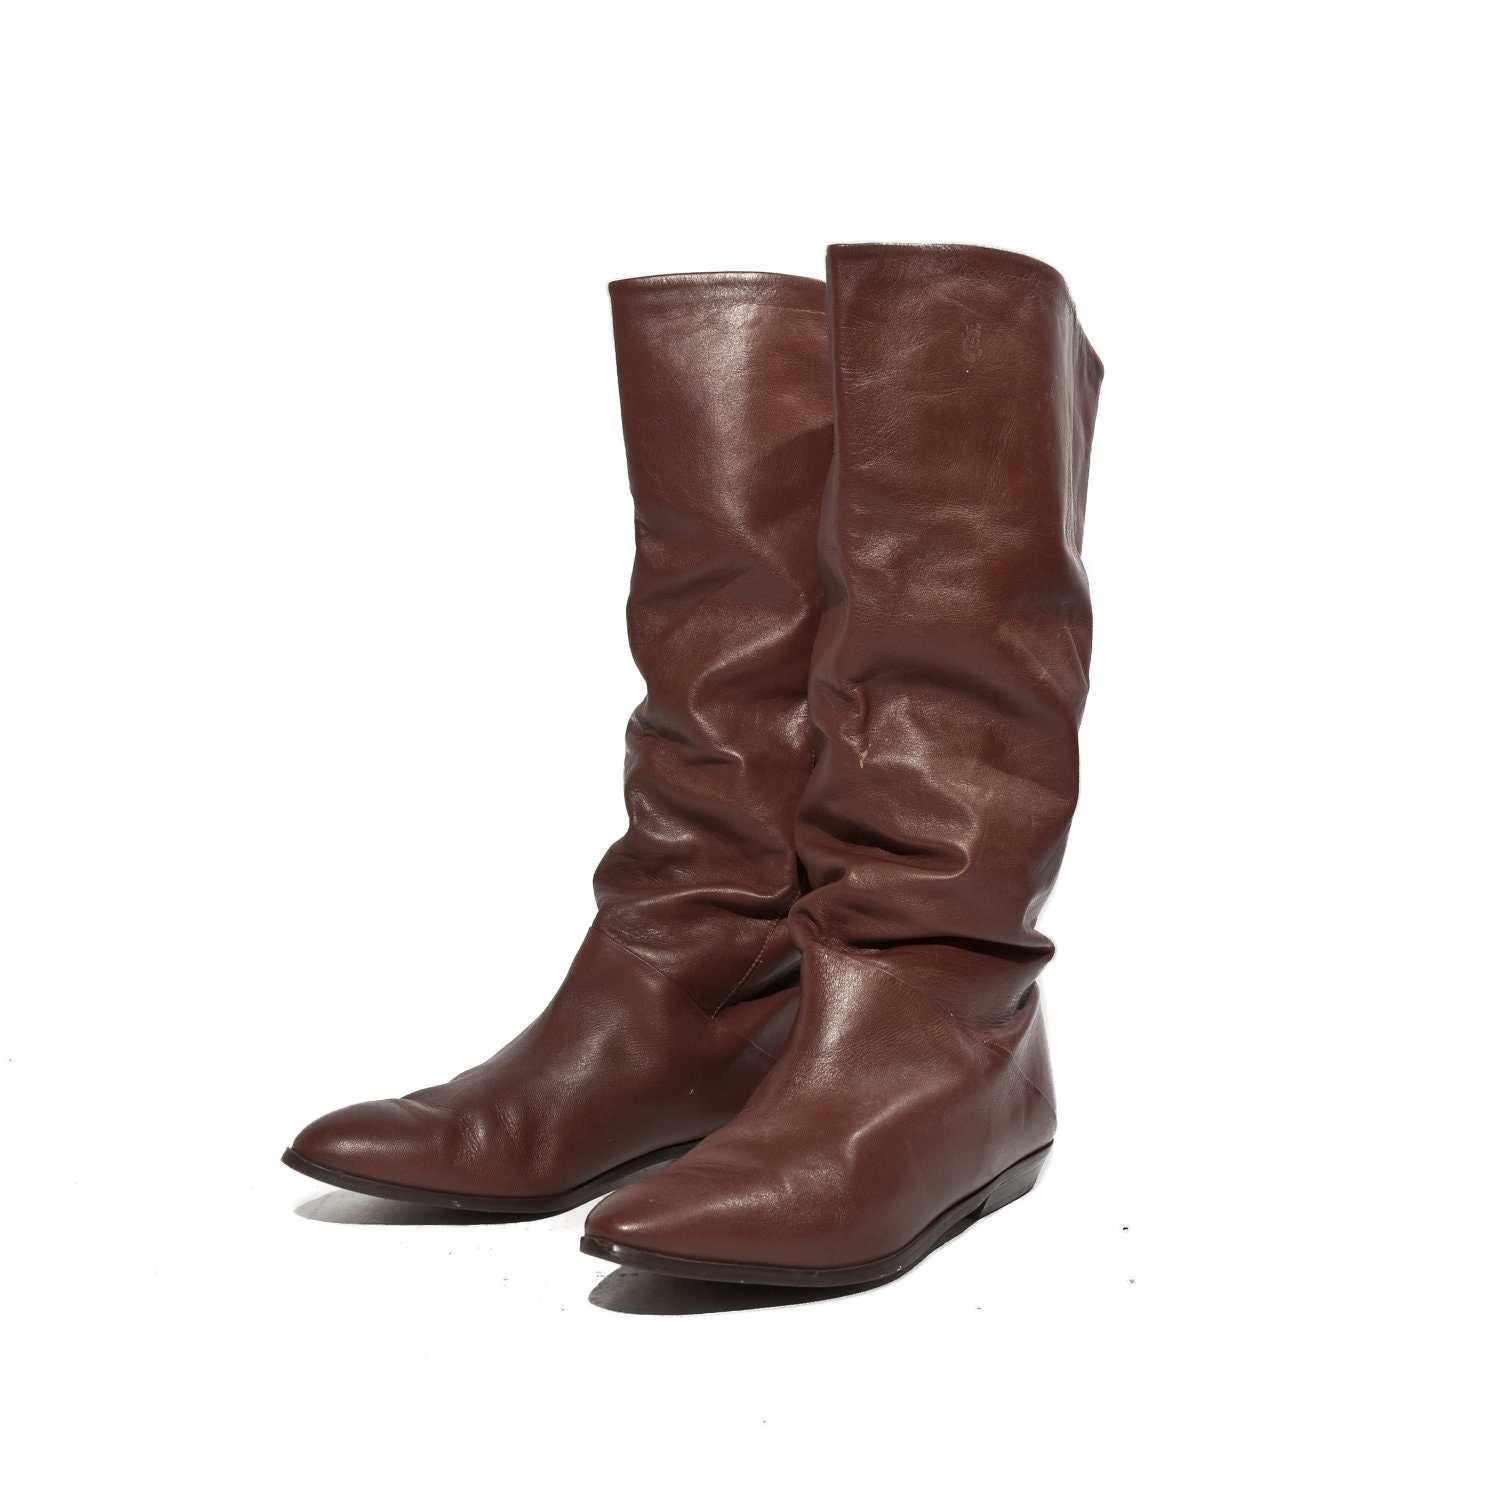 80s fashion slouch boots in brown s by